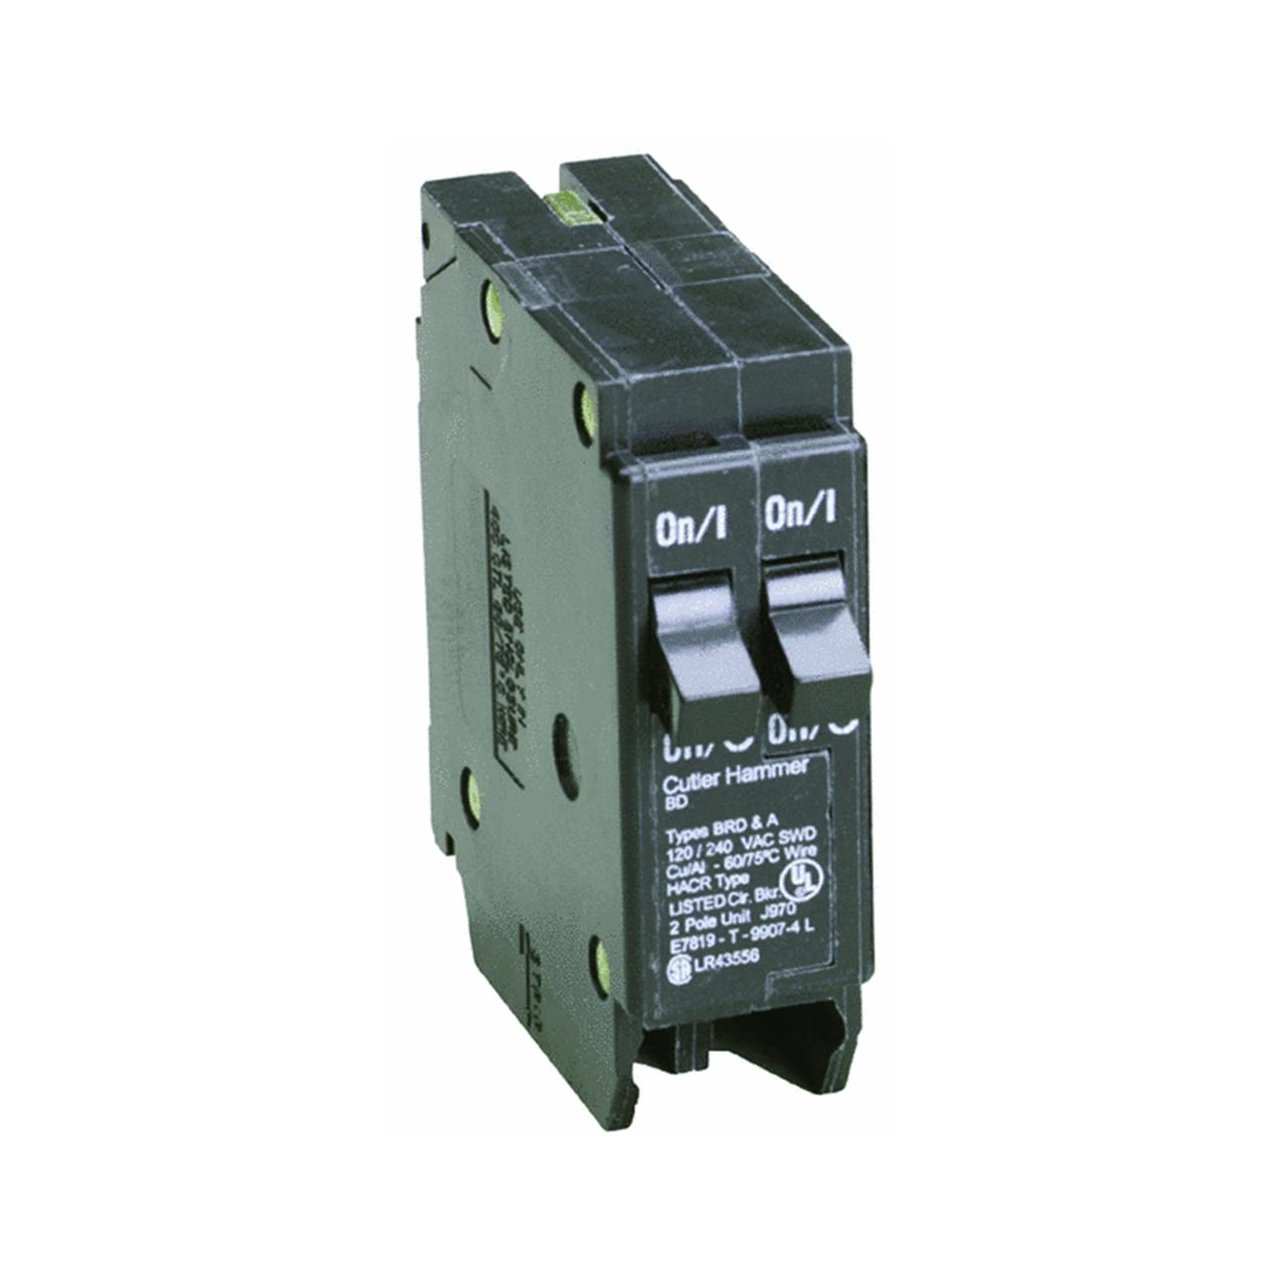 Cutler Hammer Duplex Circuit Breaker Bd2020 Circuits Pinterest Different Types Of And